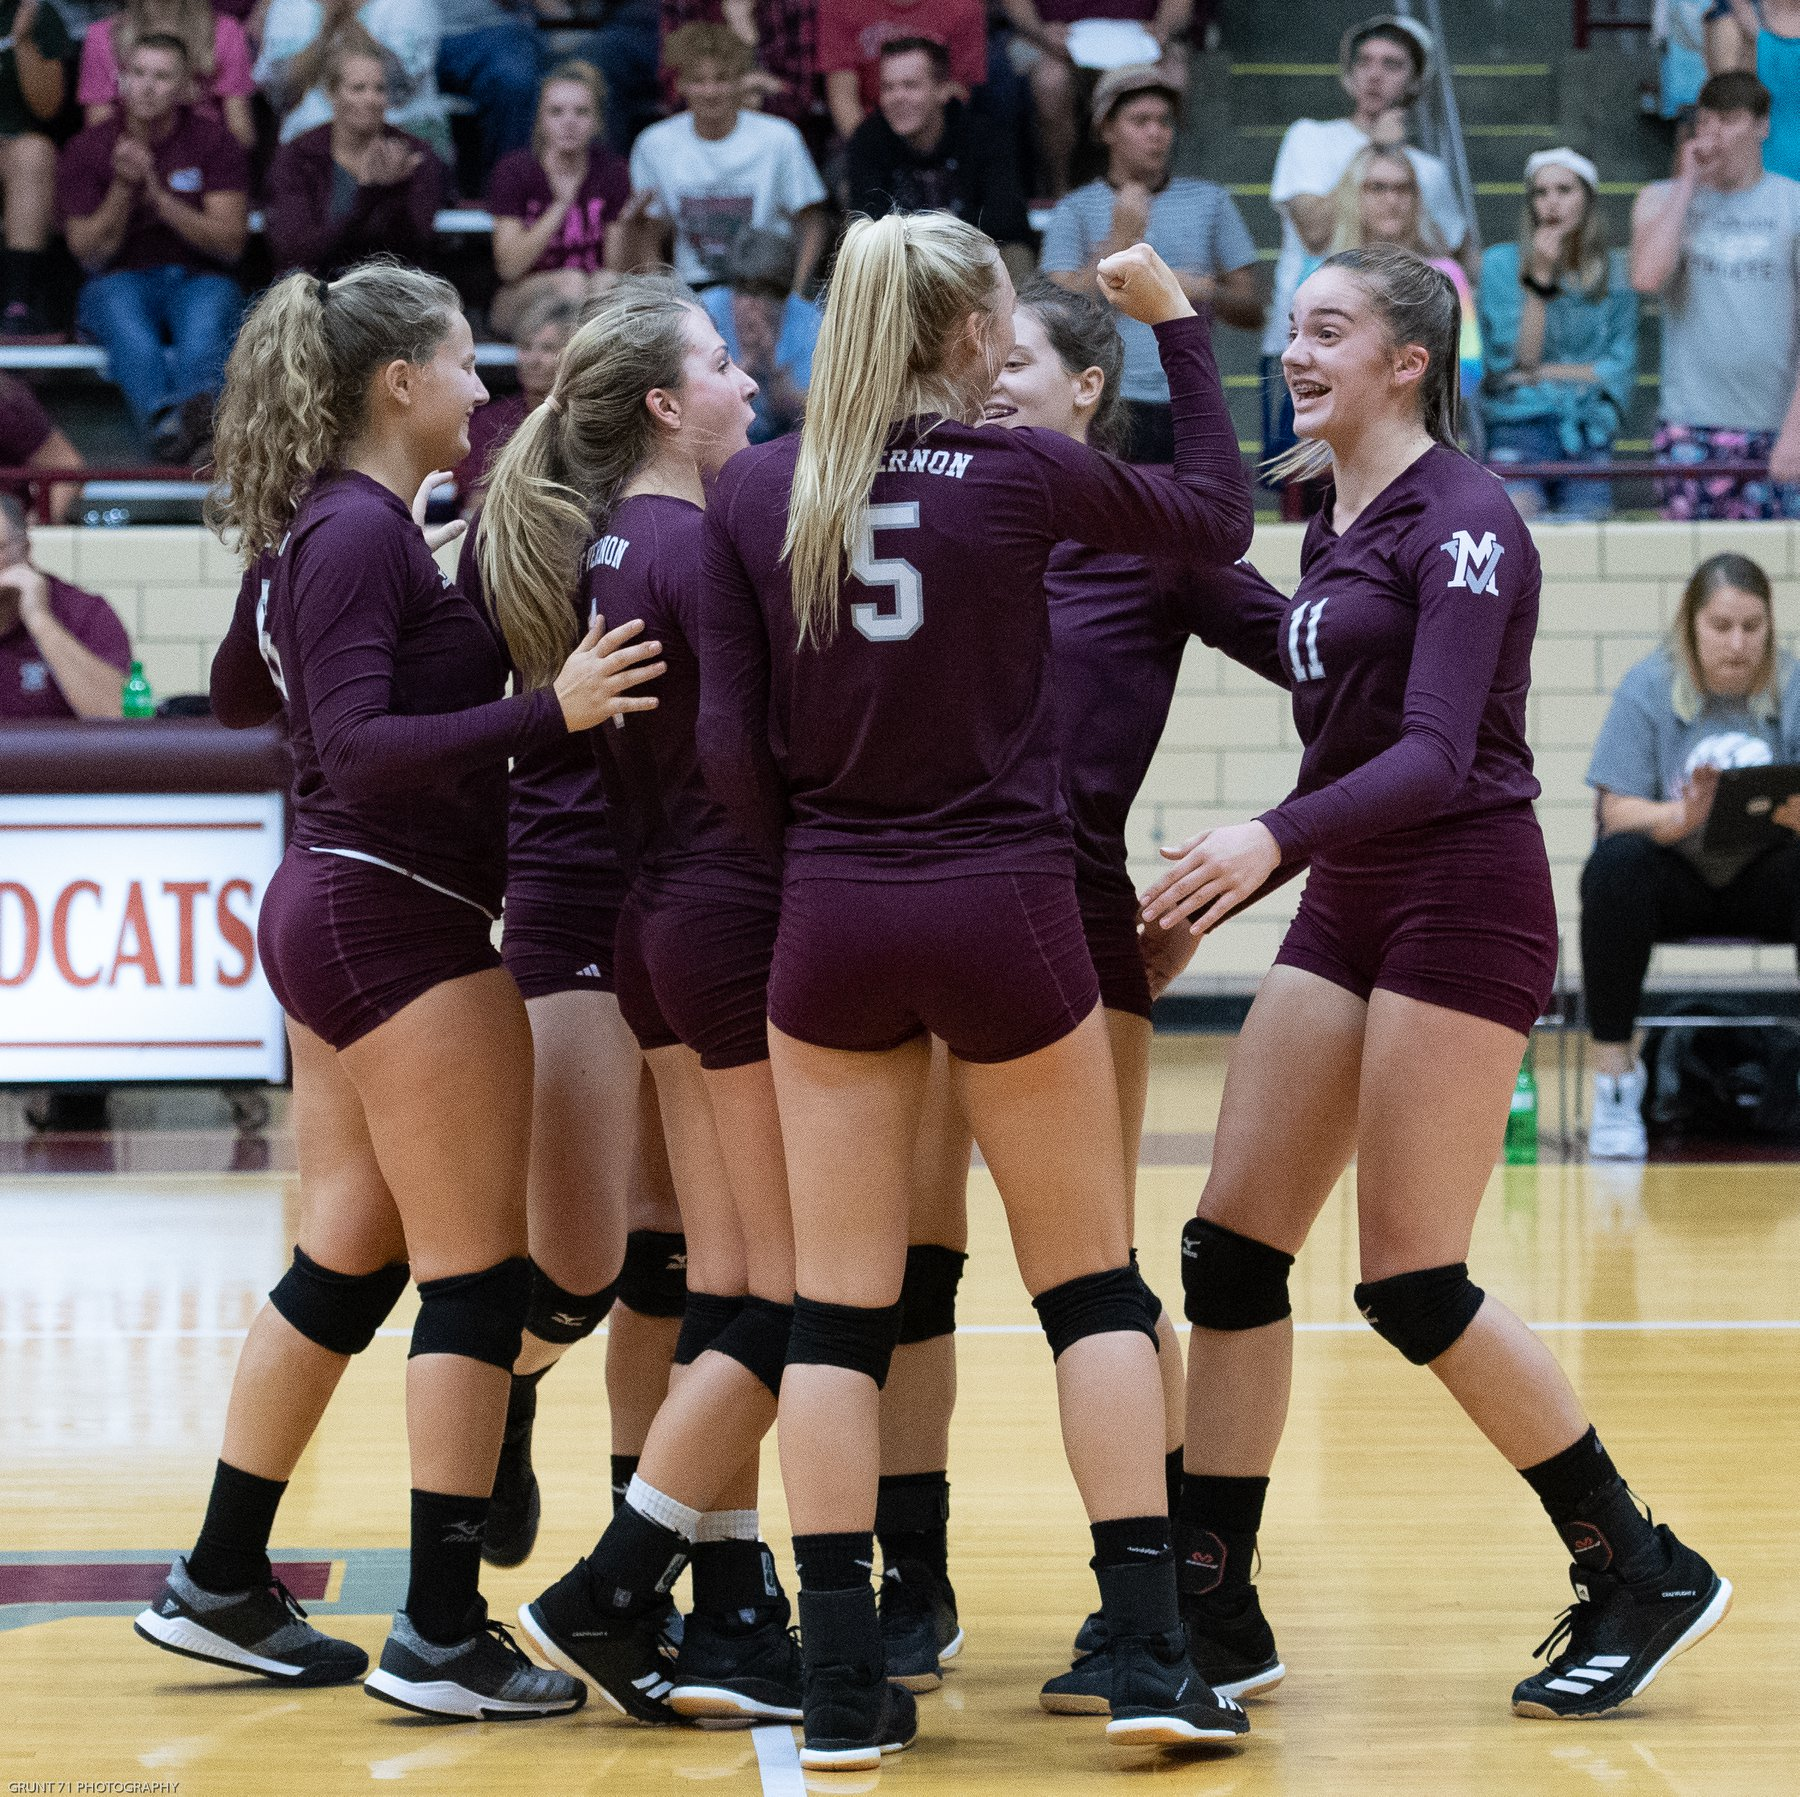 Lady Wildcats go 2-2 at Lawrence North Invite, Brooke Jackson achieves 1,000 career kills